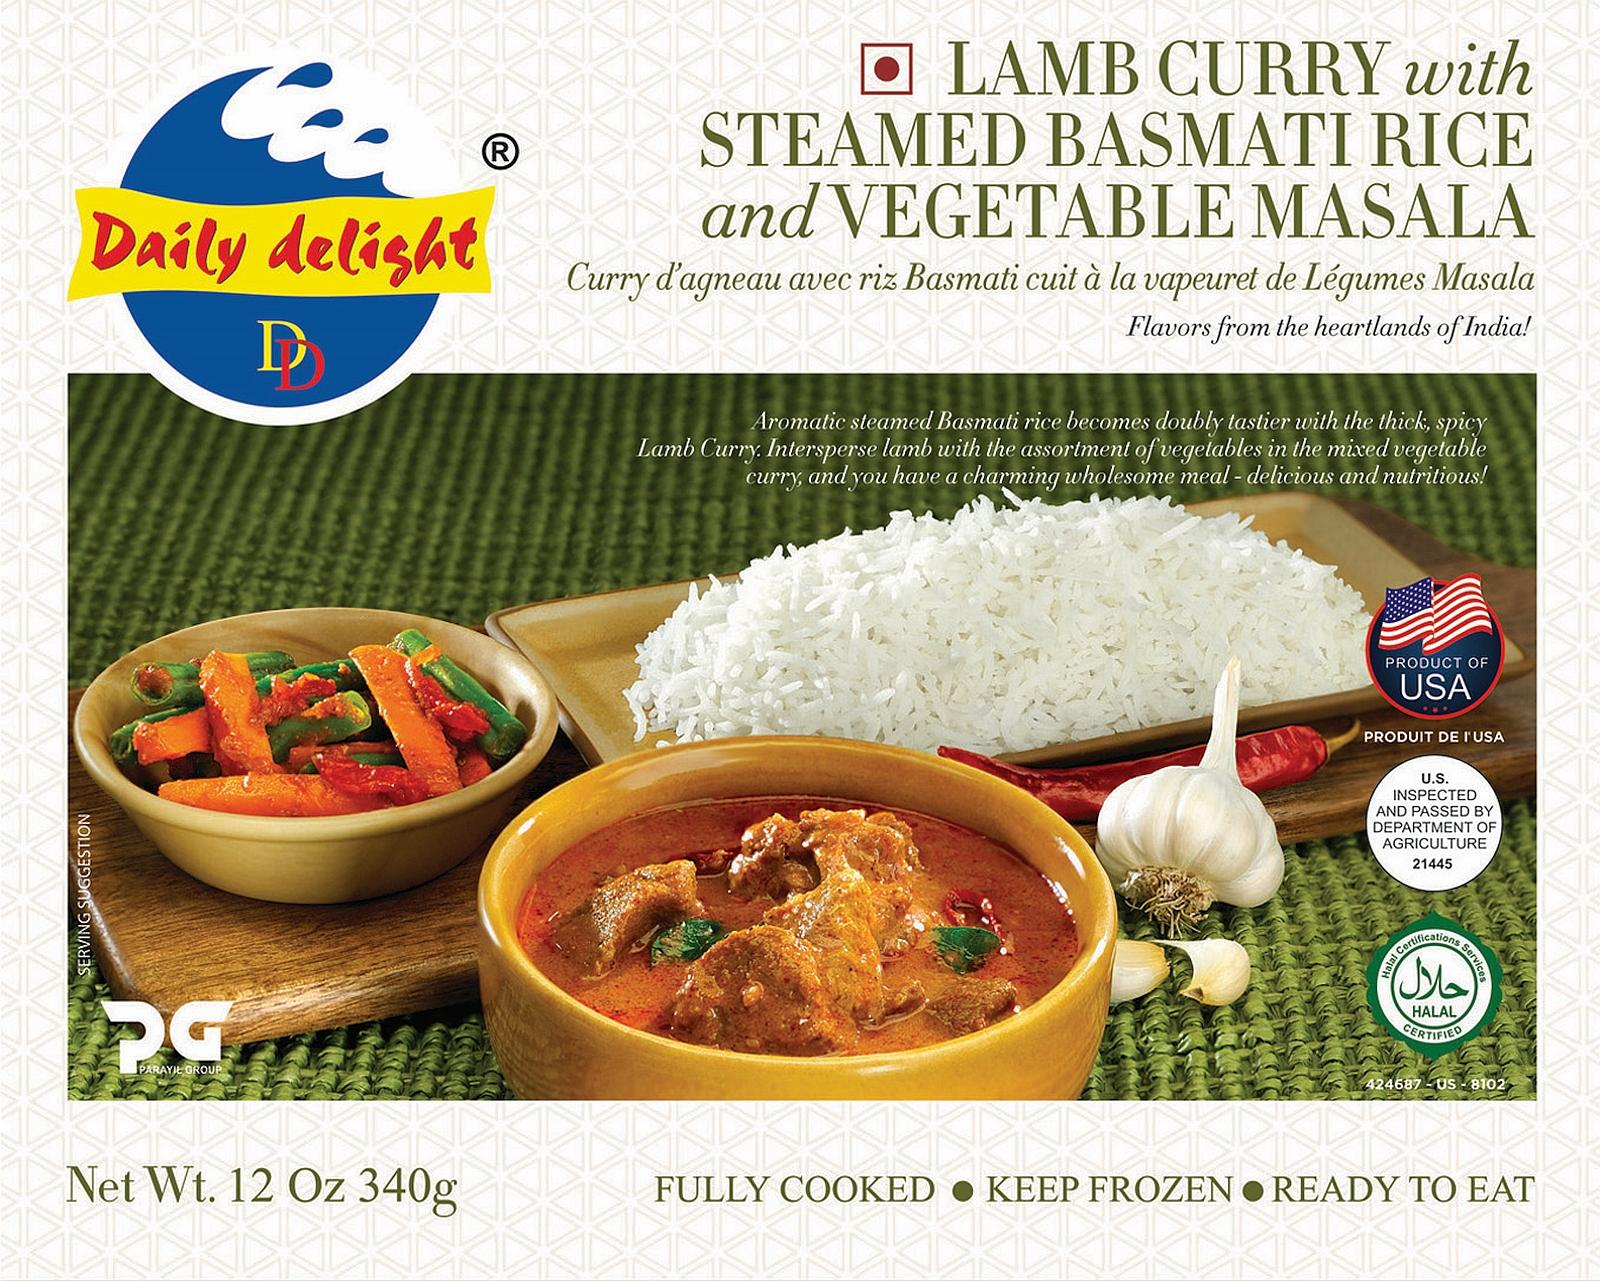 Daily Delight Lamb Curry with Steamed Basmati Rice and Vegetable Masala